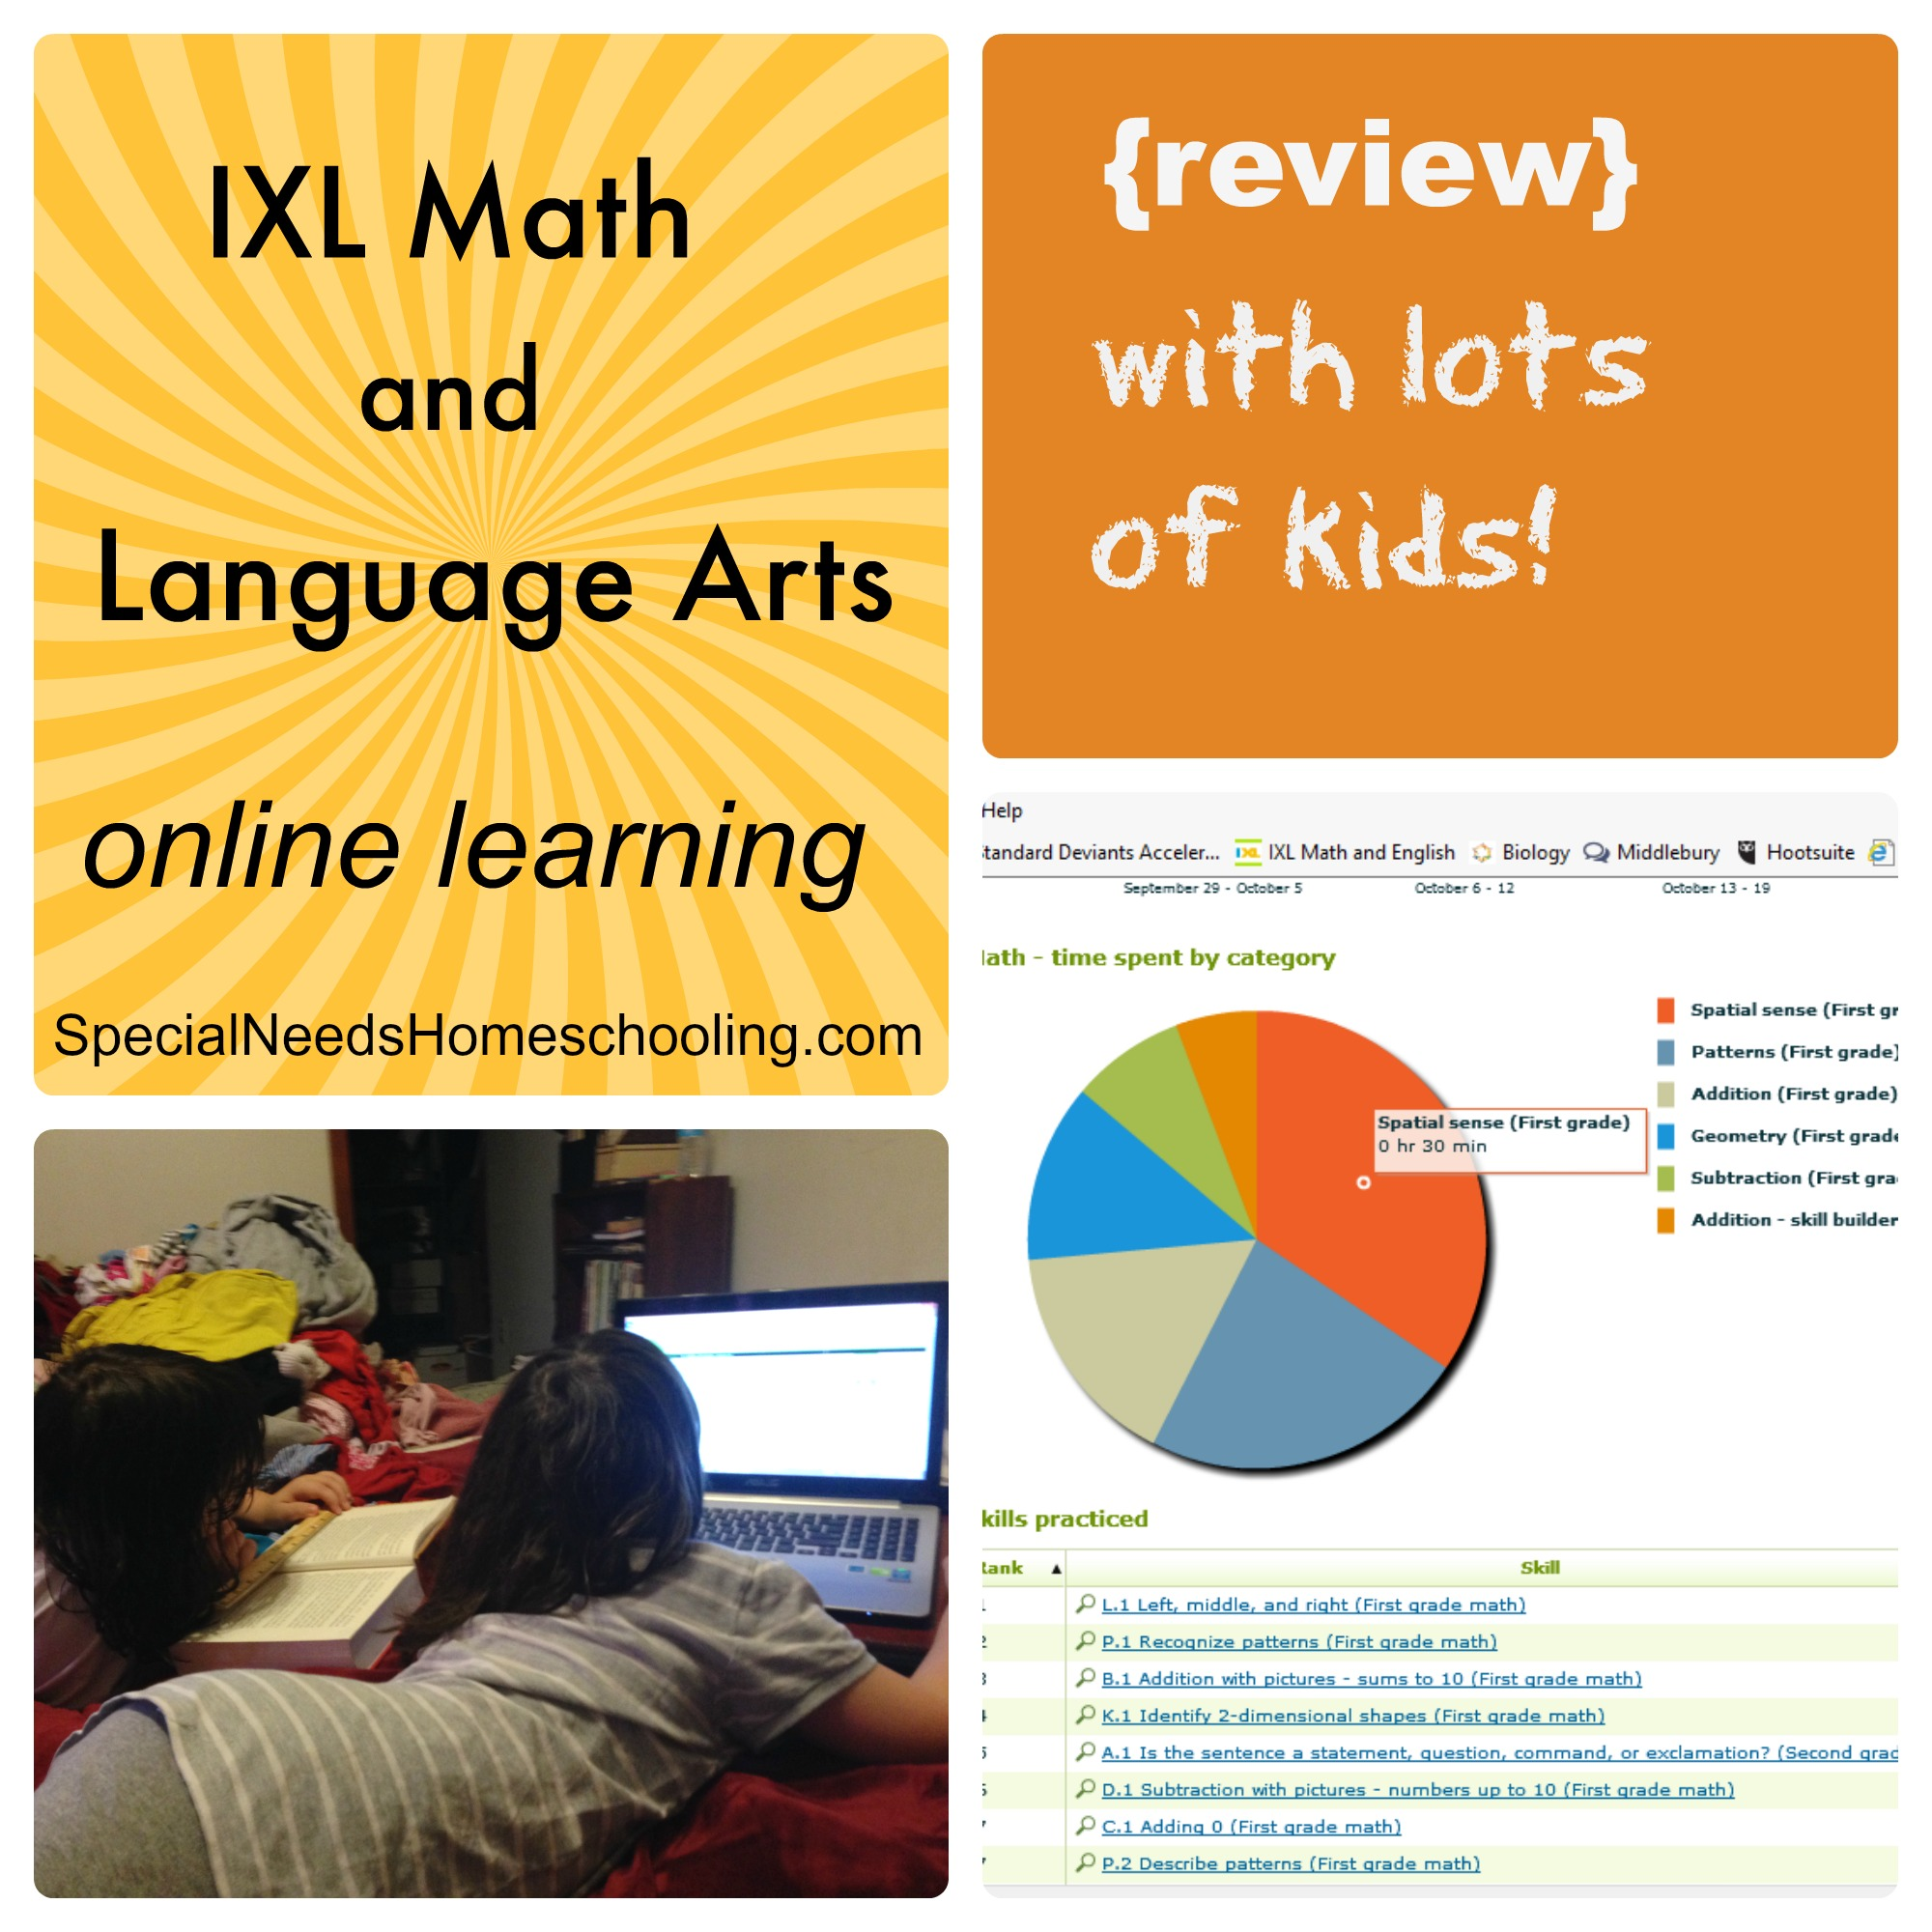 Worksheet It Online Learning Review ixl math and language arts online learning review special the world of has opened many doors for homeschoolers my whole family 5 kids got to langua